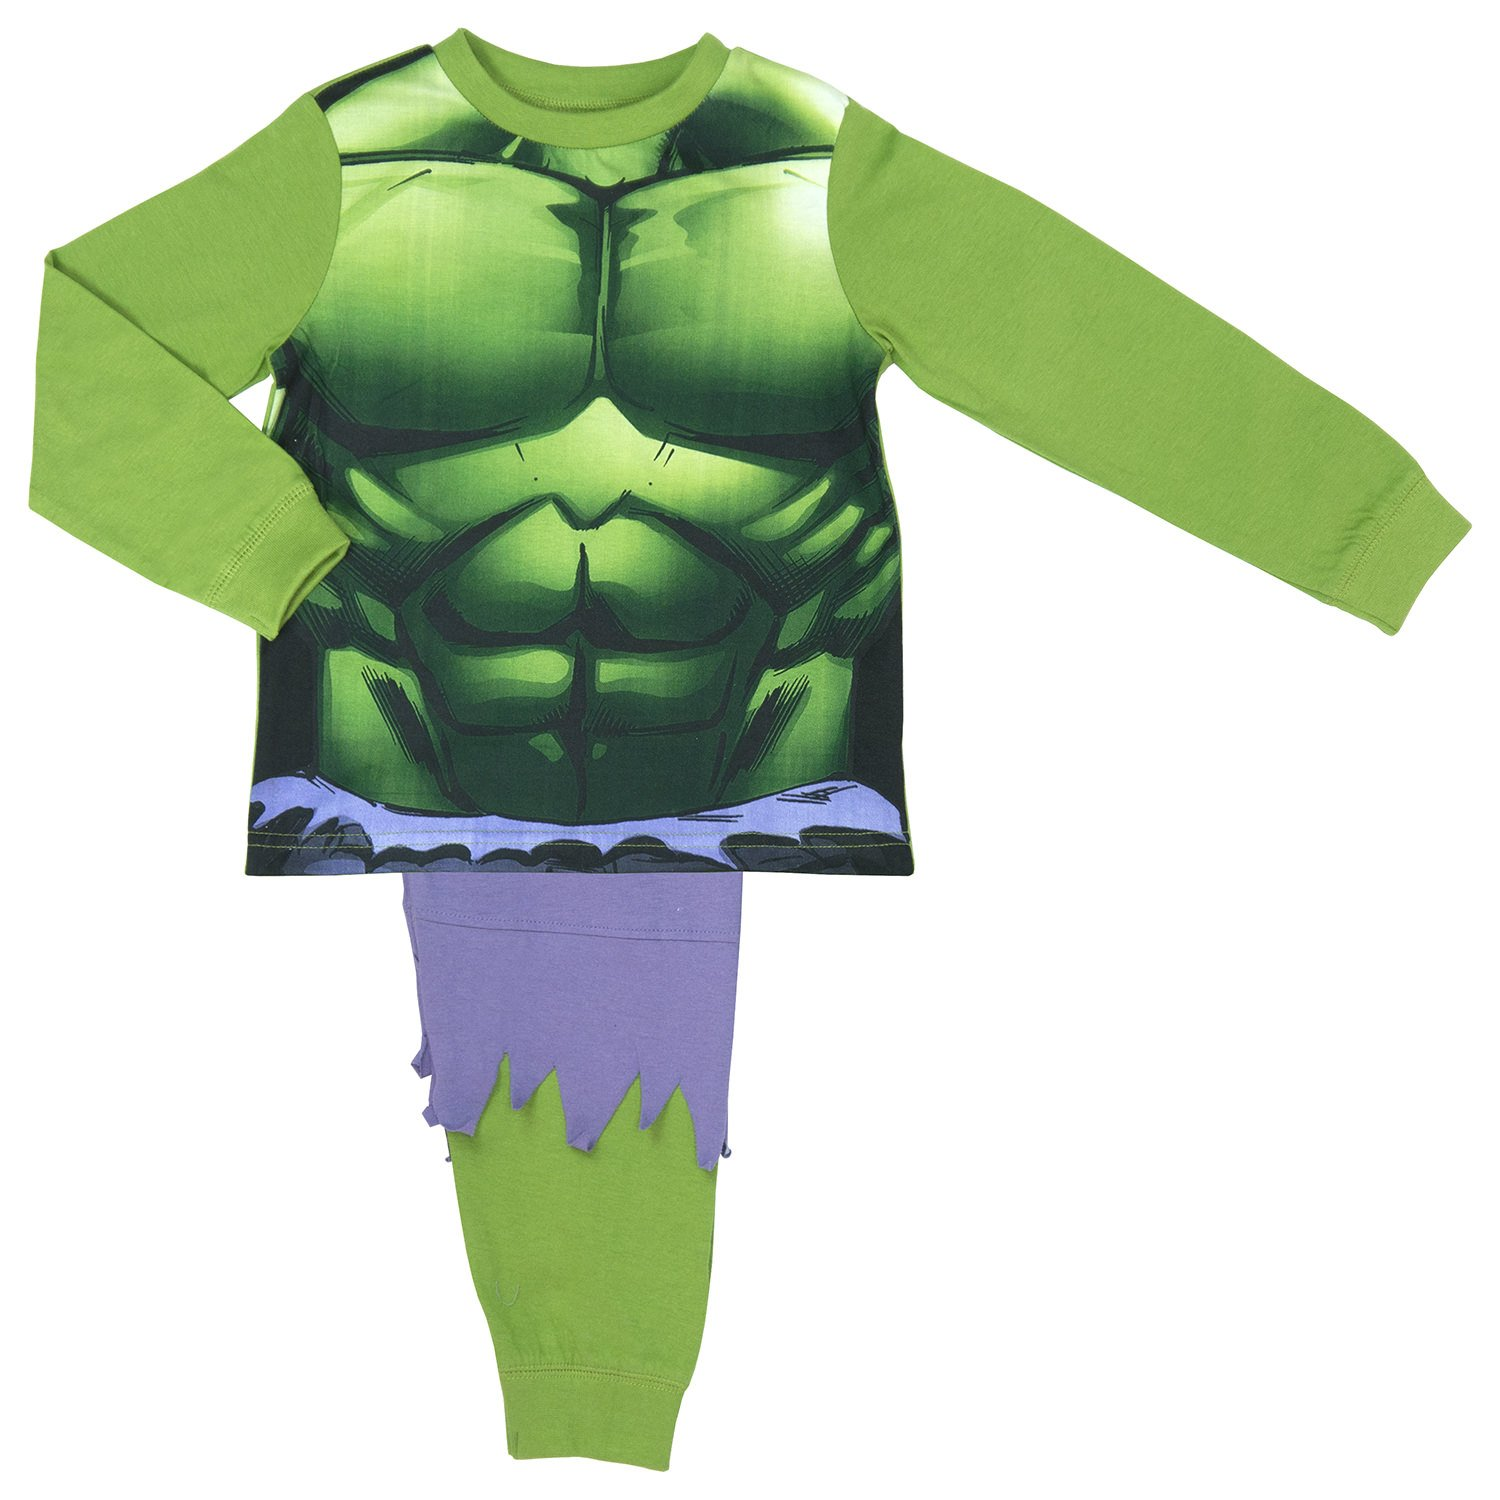 The Incredible Hulk Boys Pyjamas with ripped trouser detailing - ages 2 to 8 yea